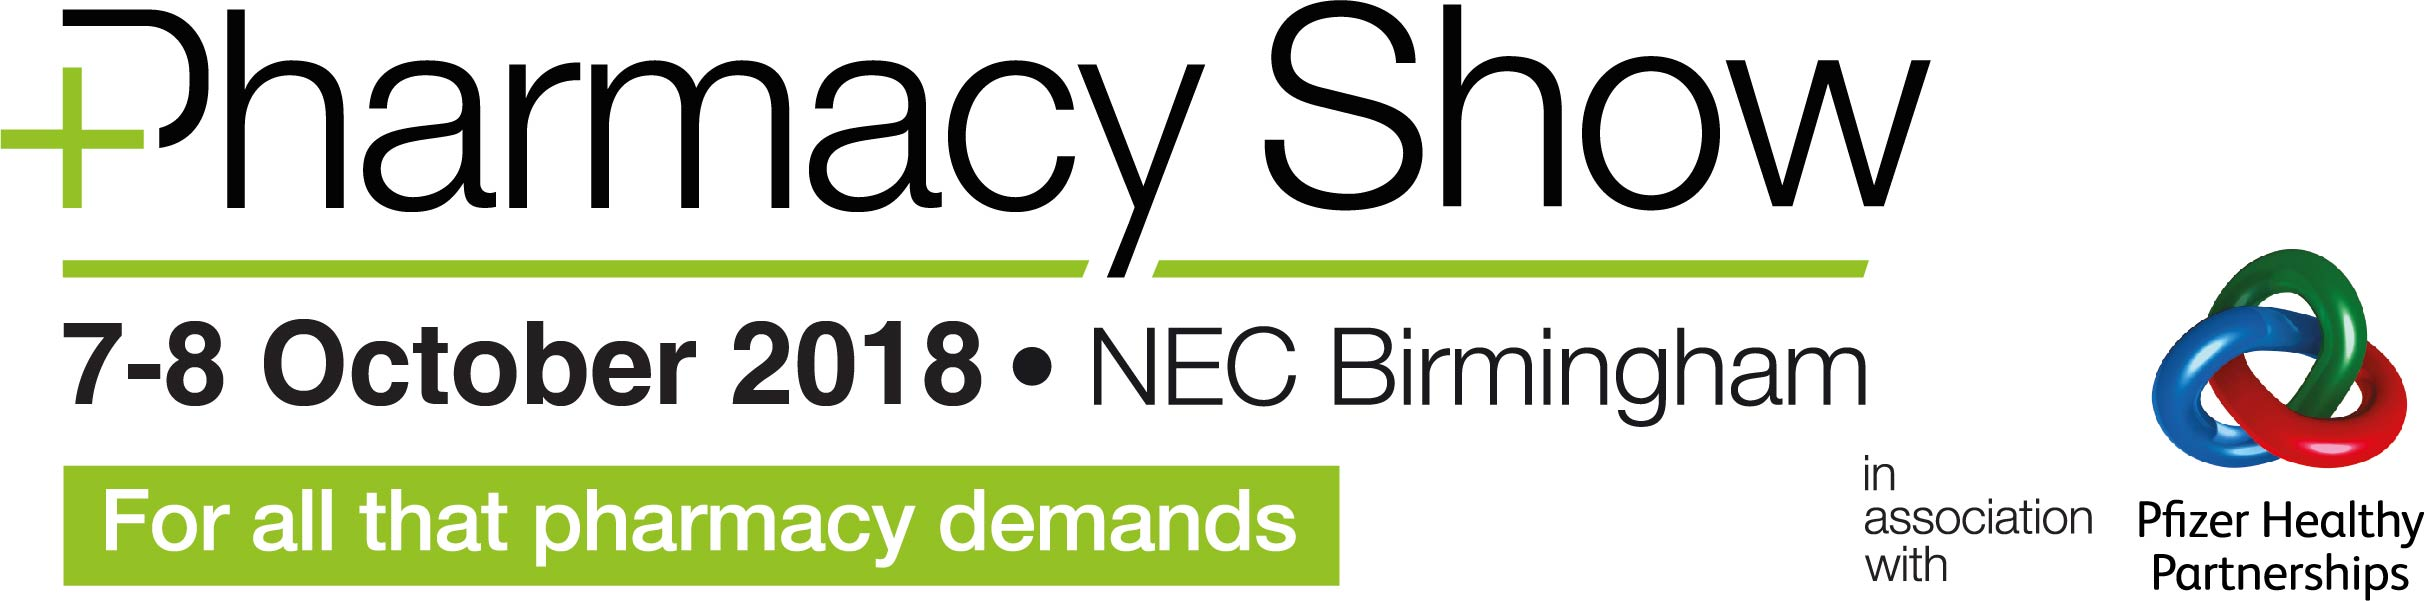 Join us at the Pharmacy Show! 7 – 8 October at Birmingham NEC